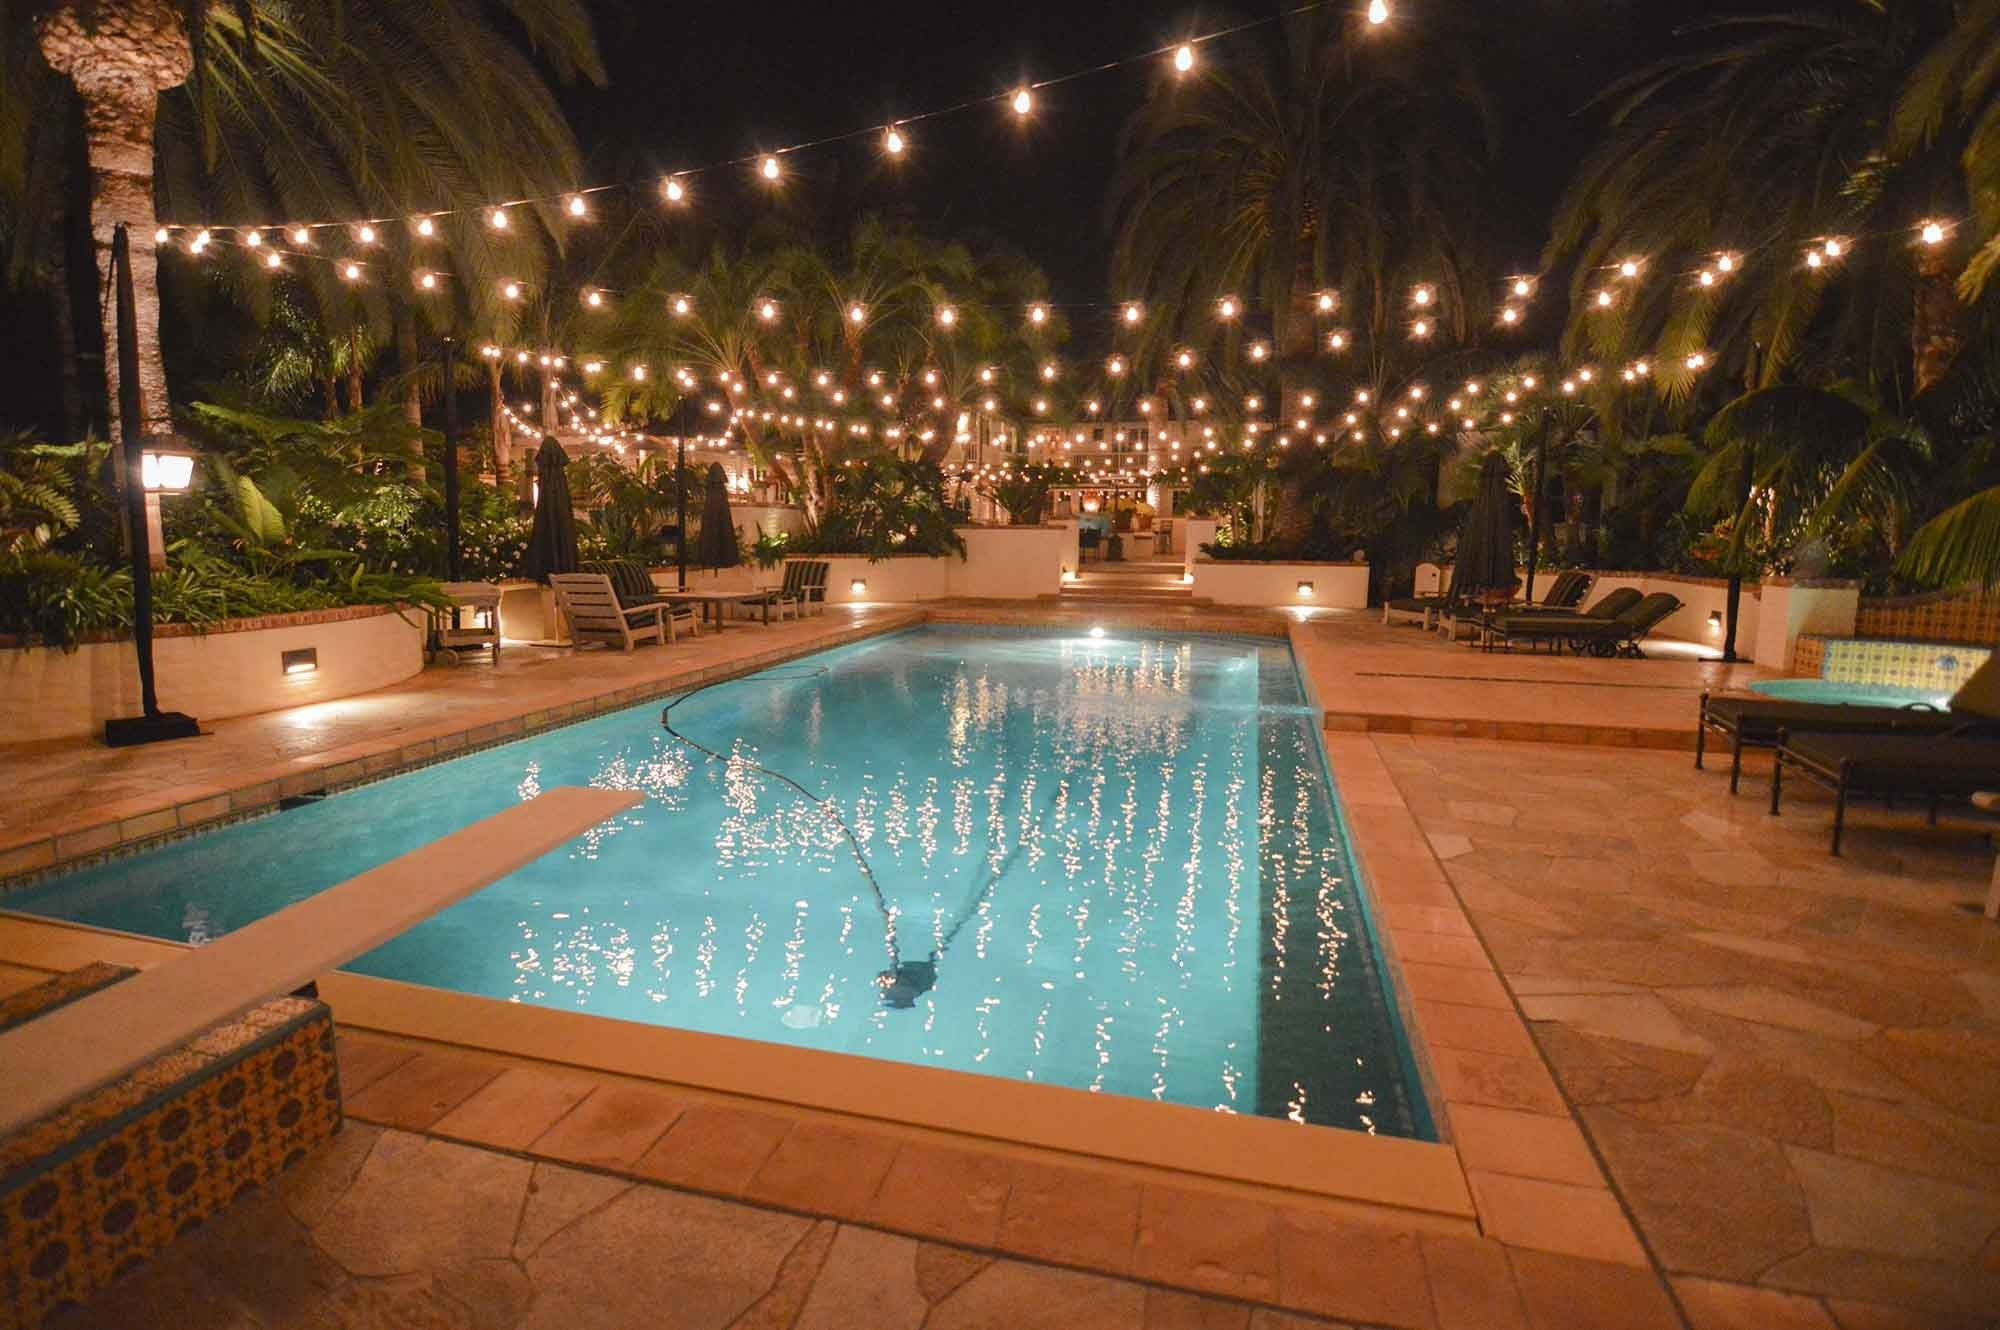 Market Lights, Party, Globe & Patio String Lights Outdoor Pertaining To Widely Used Outdoor Pool Lanterns (View 11 of 20)